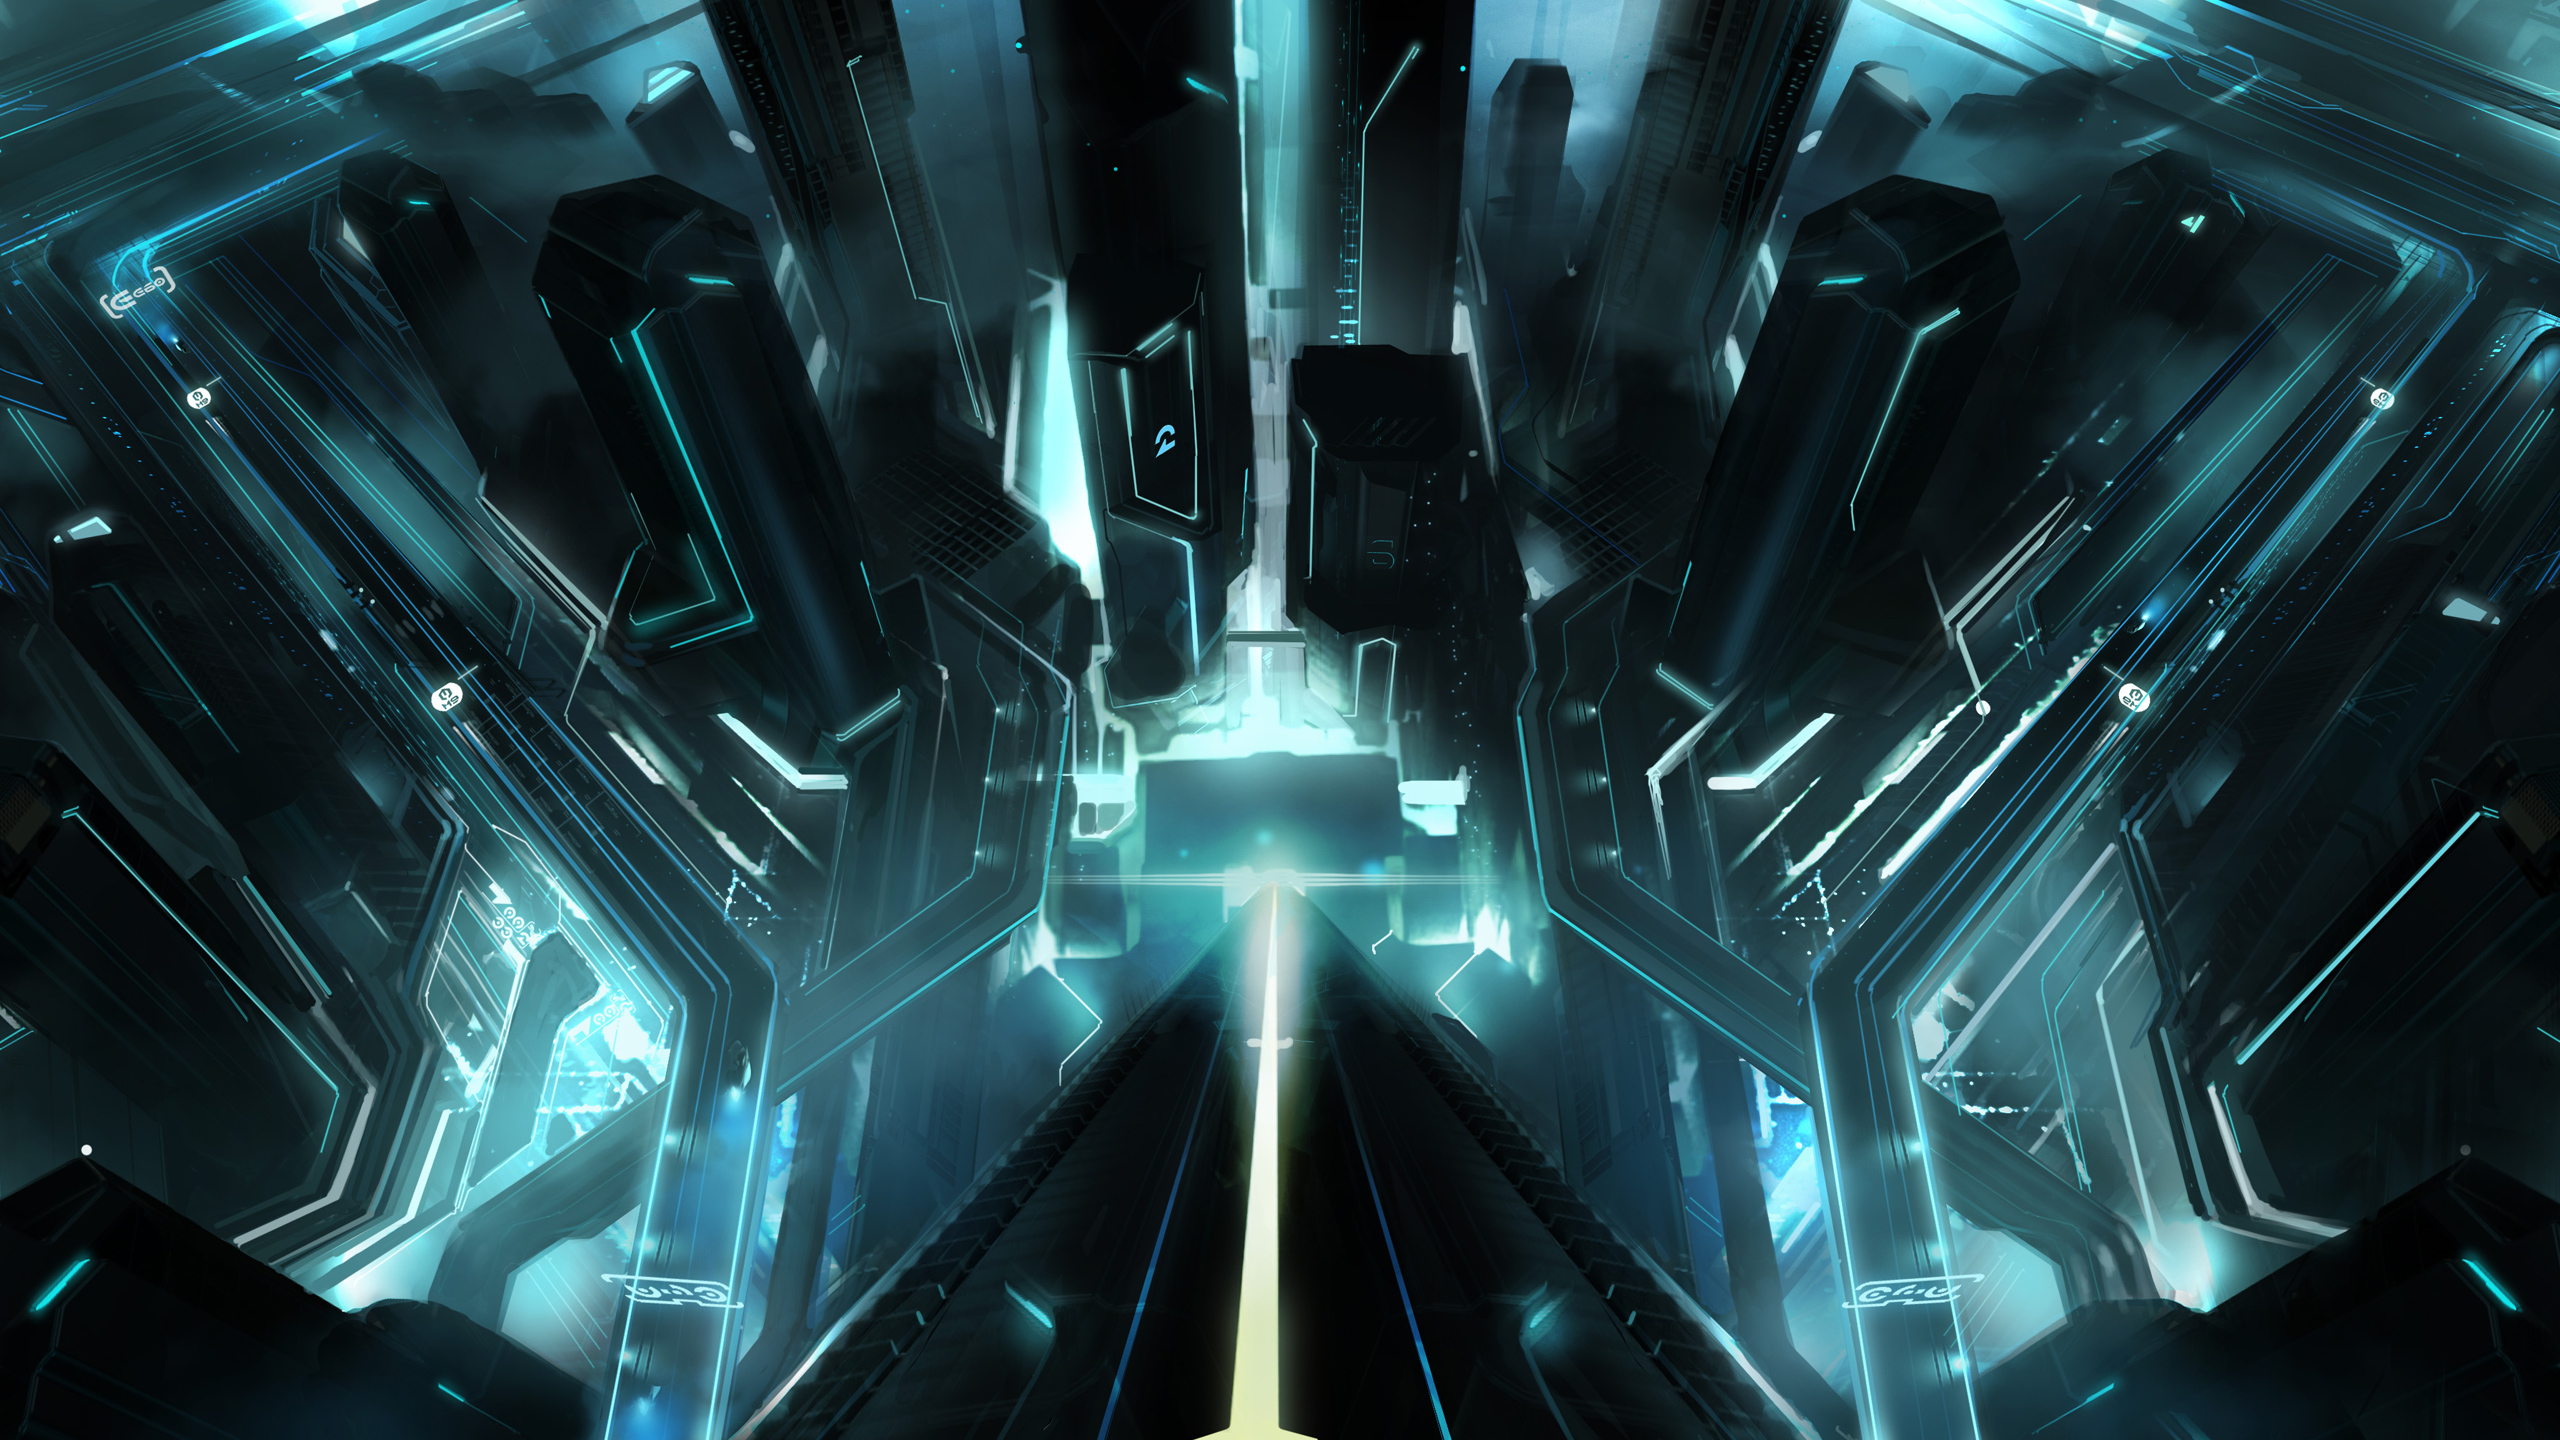 Beautiful Quotes And Inspirational Wallpapers Hd Hd Tron Legacy Backgrounds Pixelstalk Net